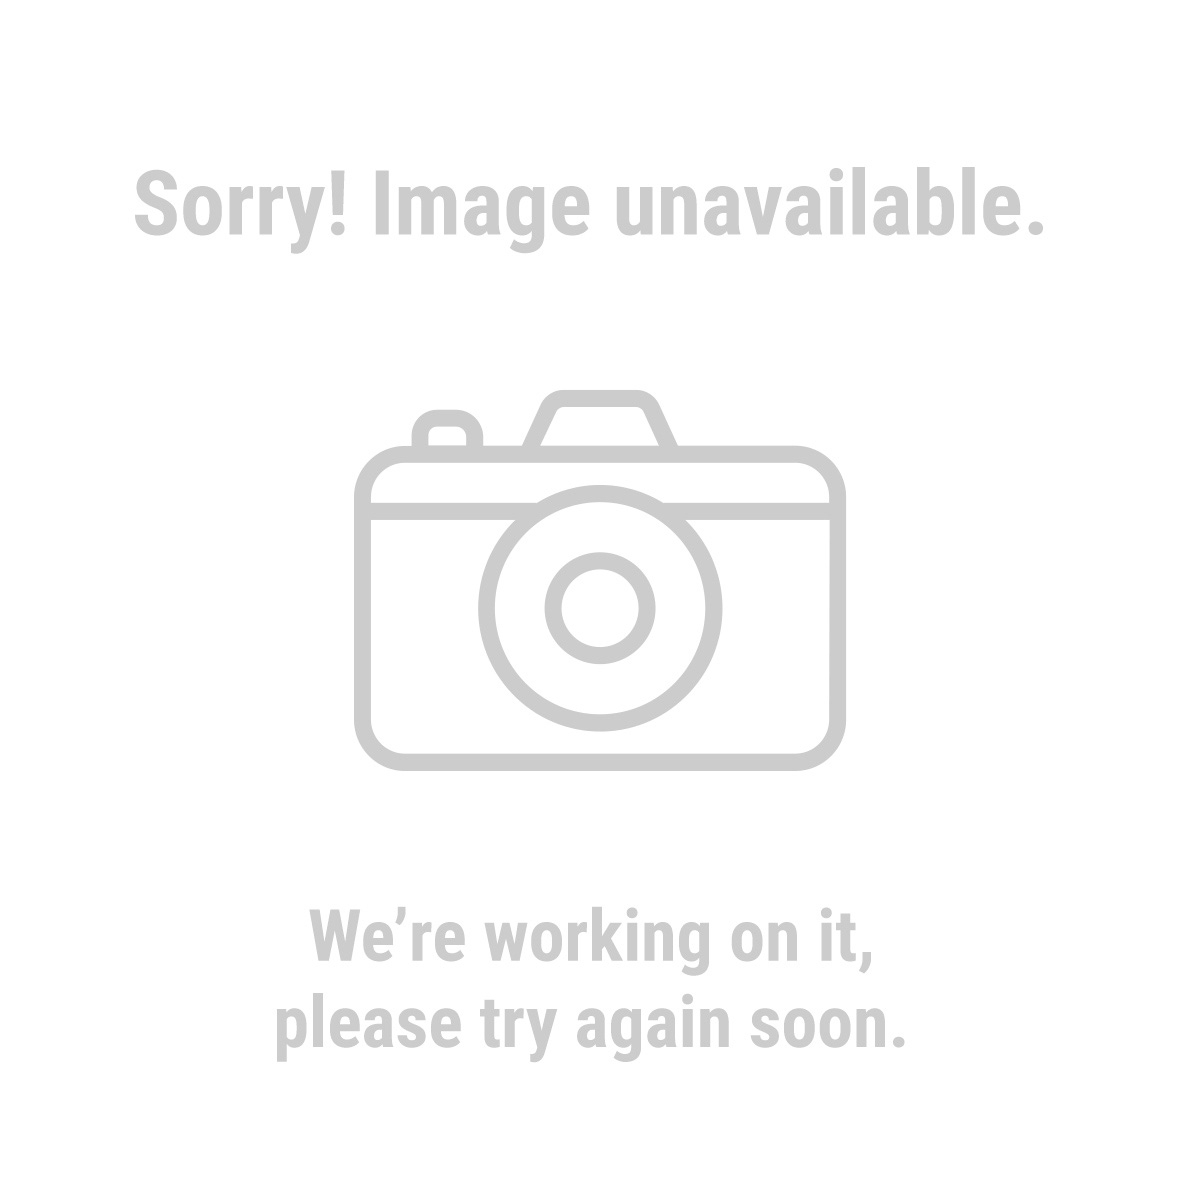 Towing your bike trailer hitch mount or dolly for Outboard motor dolly harbor freight